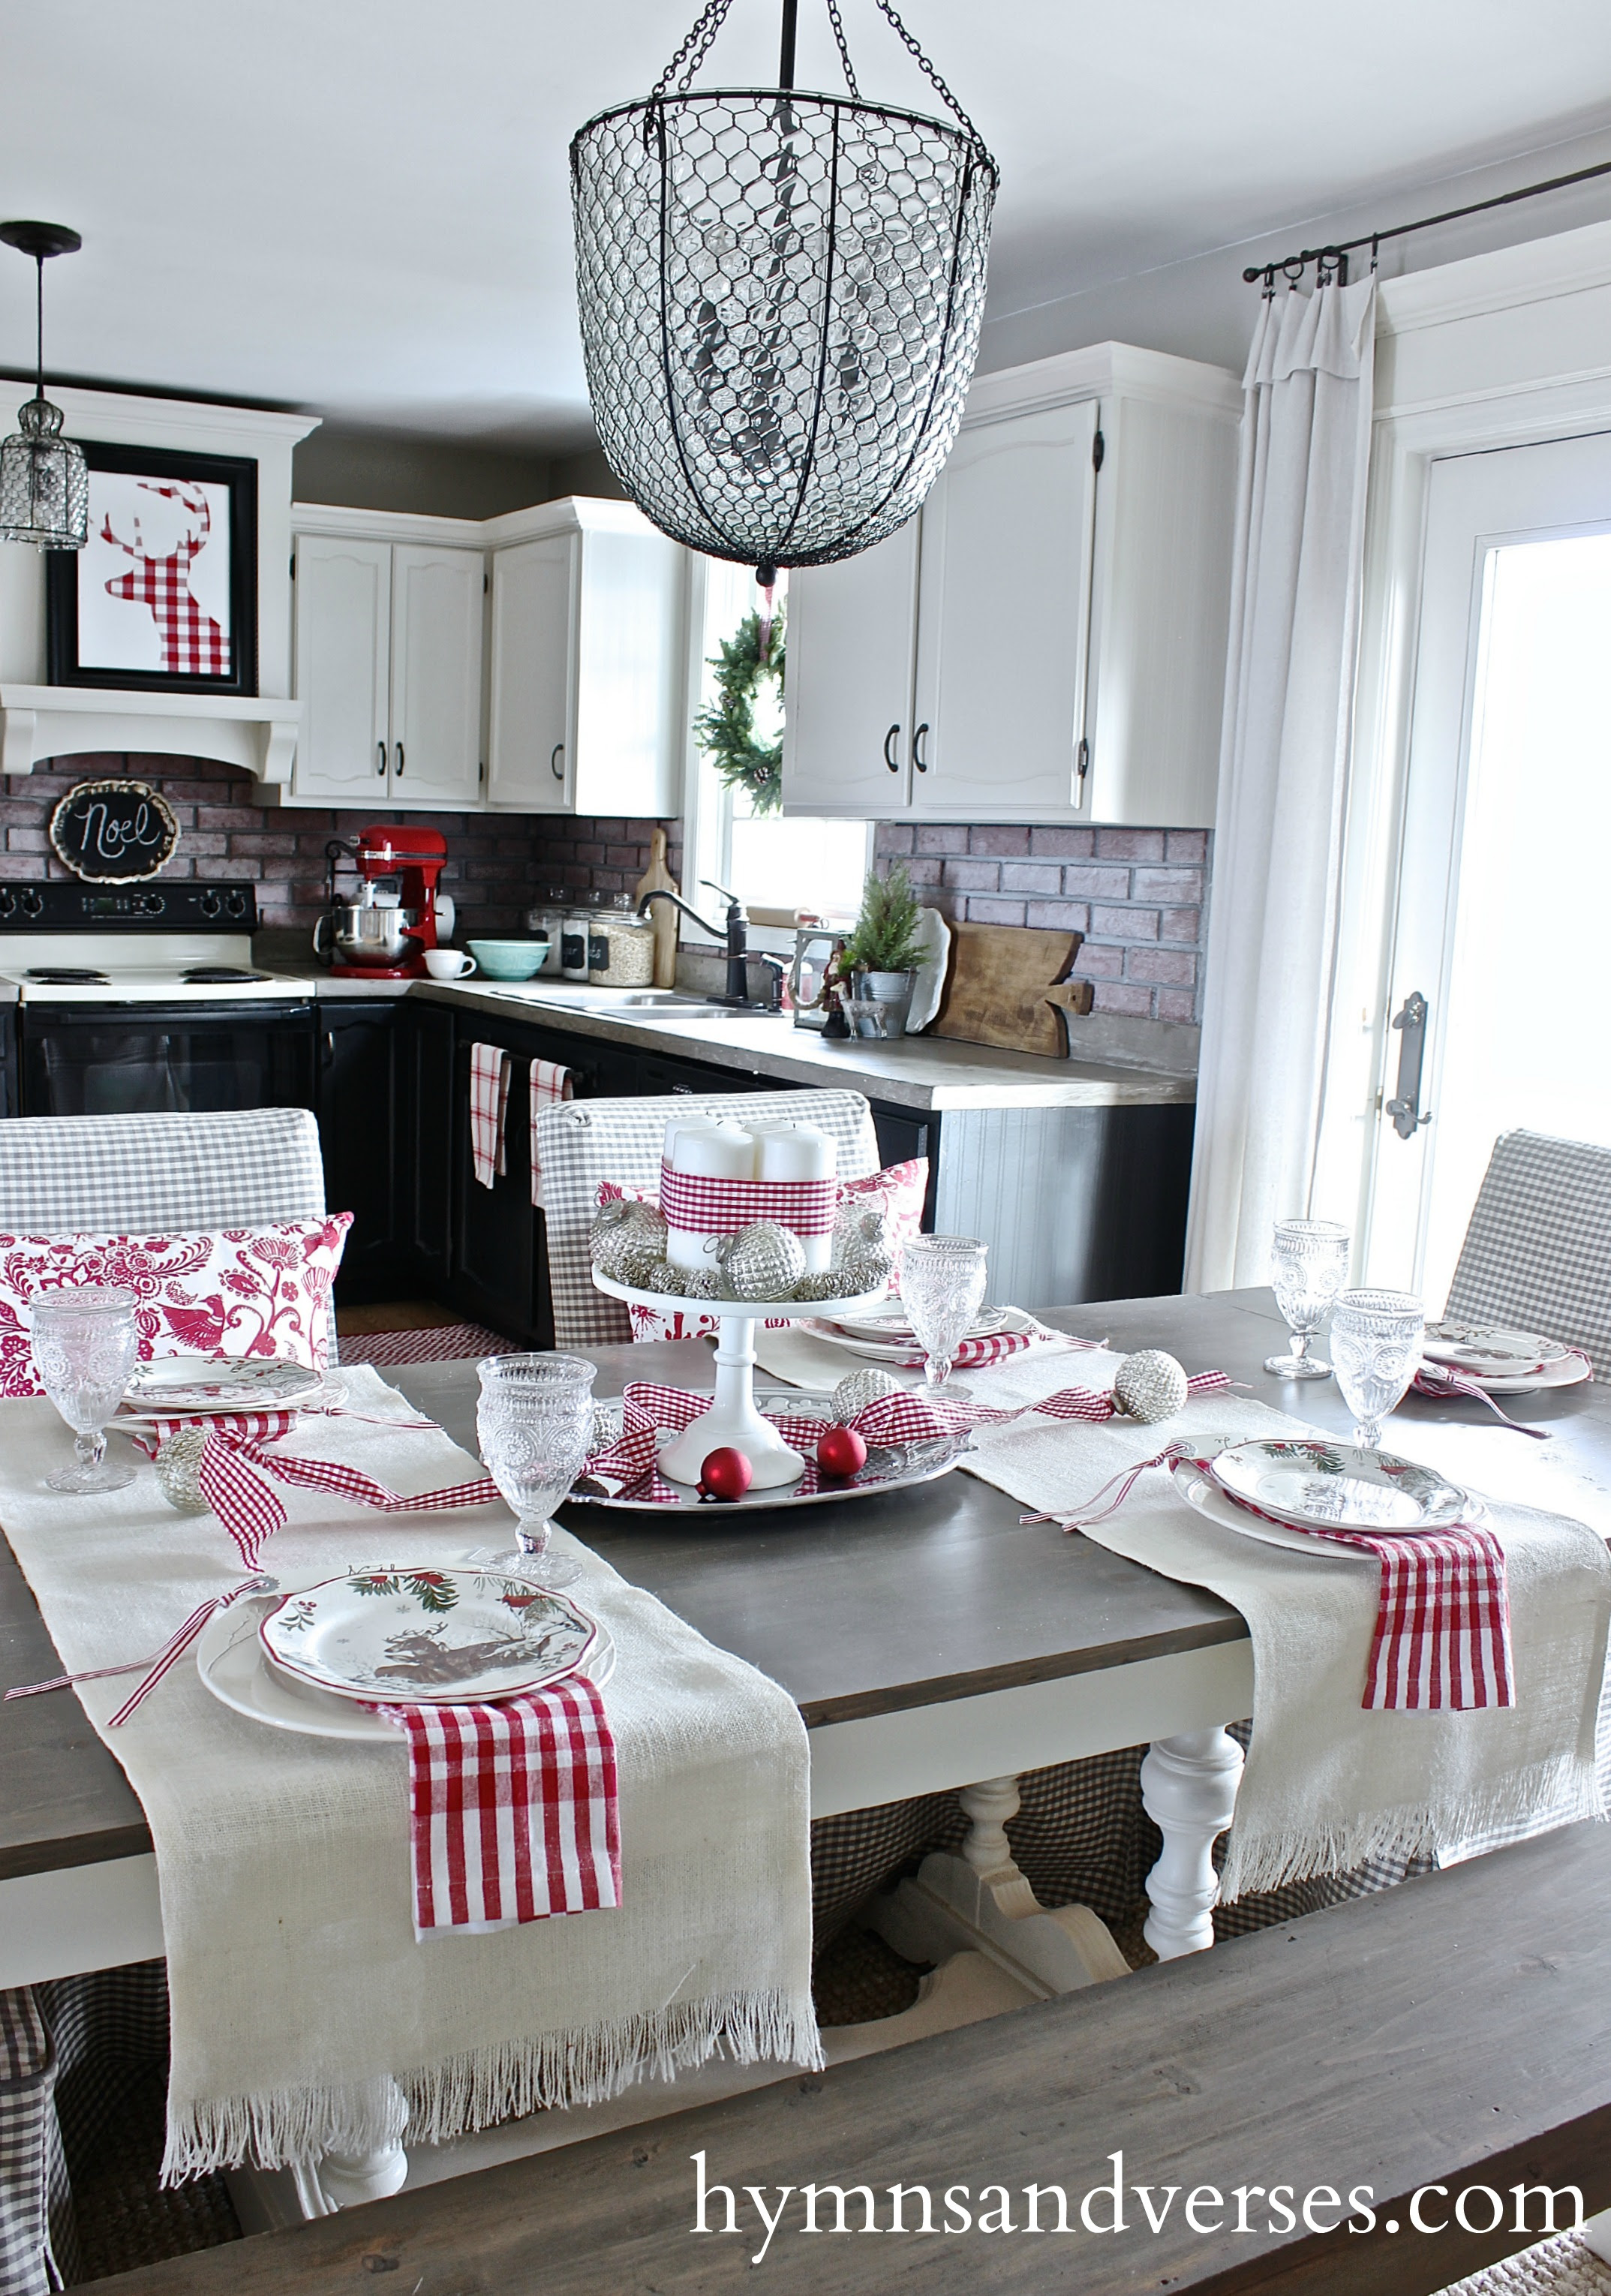 Christmas Dining Room & Kitchen - Hymns and Verses